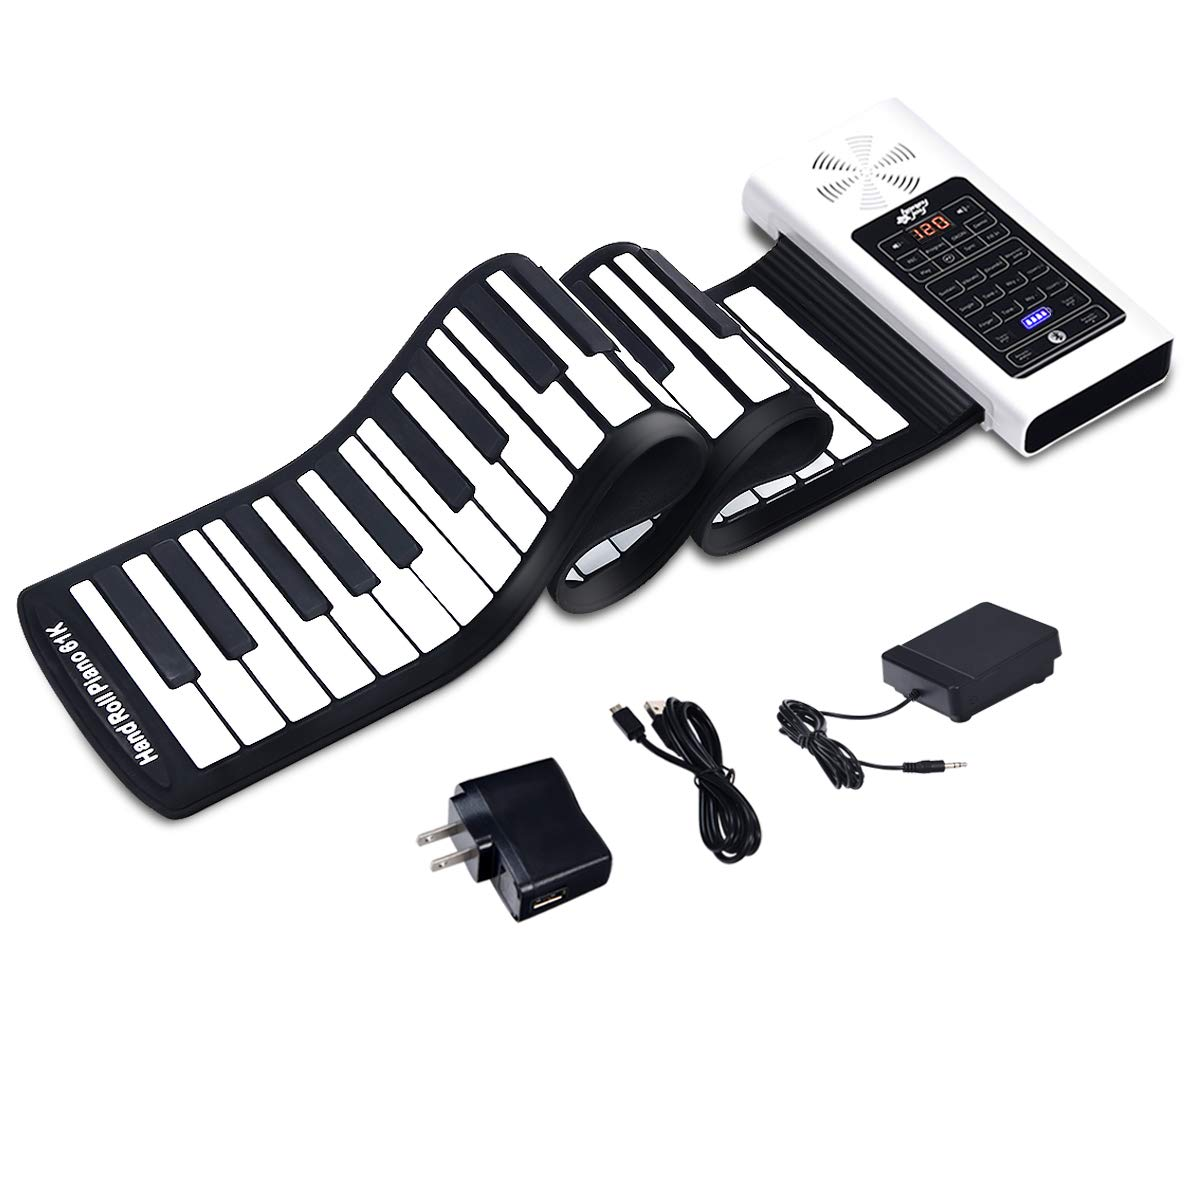 Electric Roll Up Piano, Safeplus Portable Foldable 61 Keys Flexible Soft Silicone Electronic Music Keyboard Piano, Battery or USB Powered with Louder Speaker by Safeplus